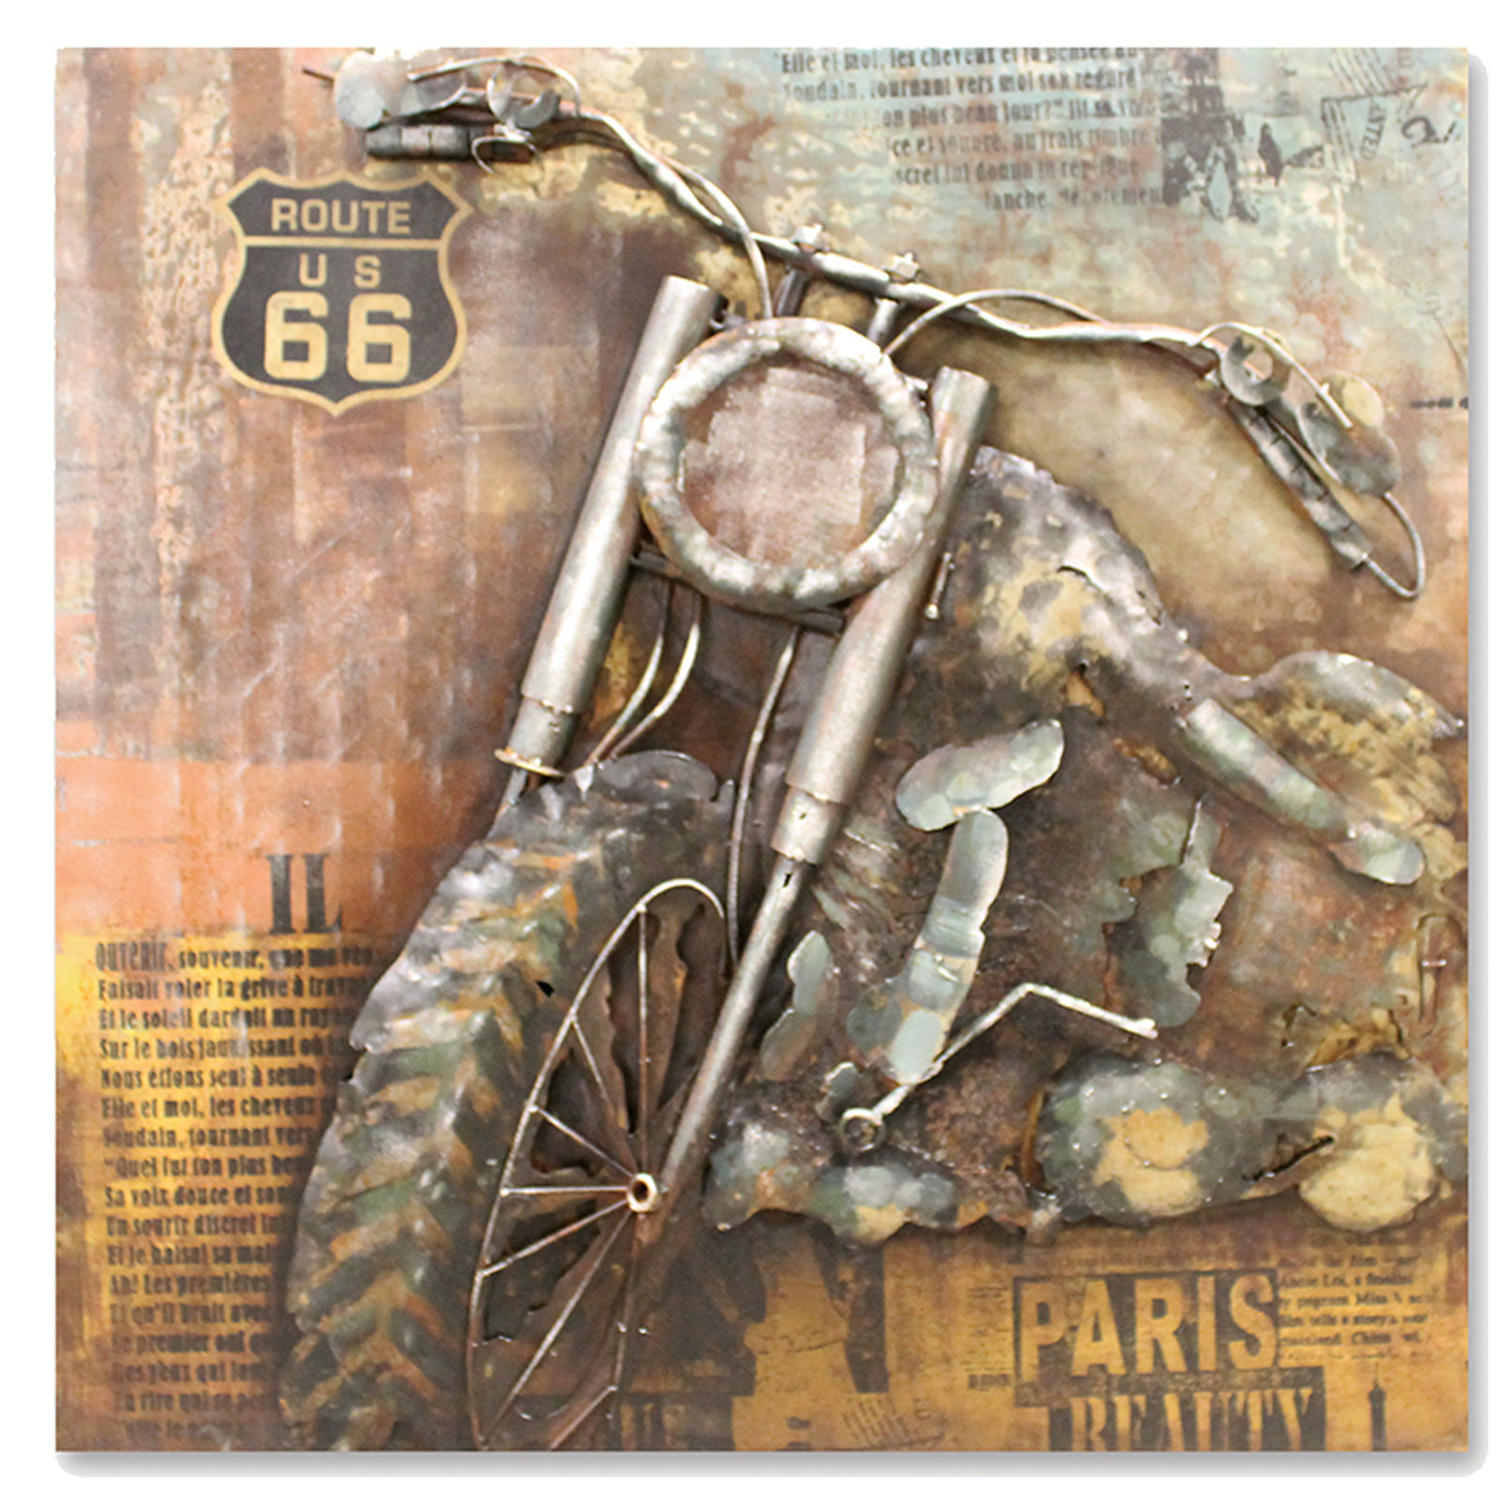 3D American Chopper metal wall art featuring Route 66